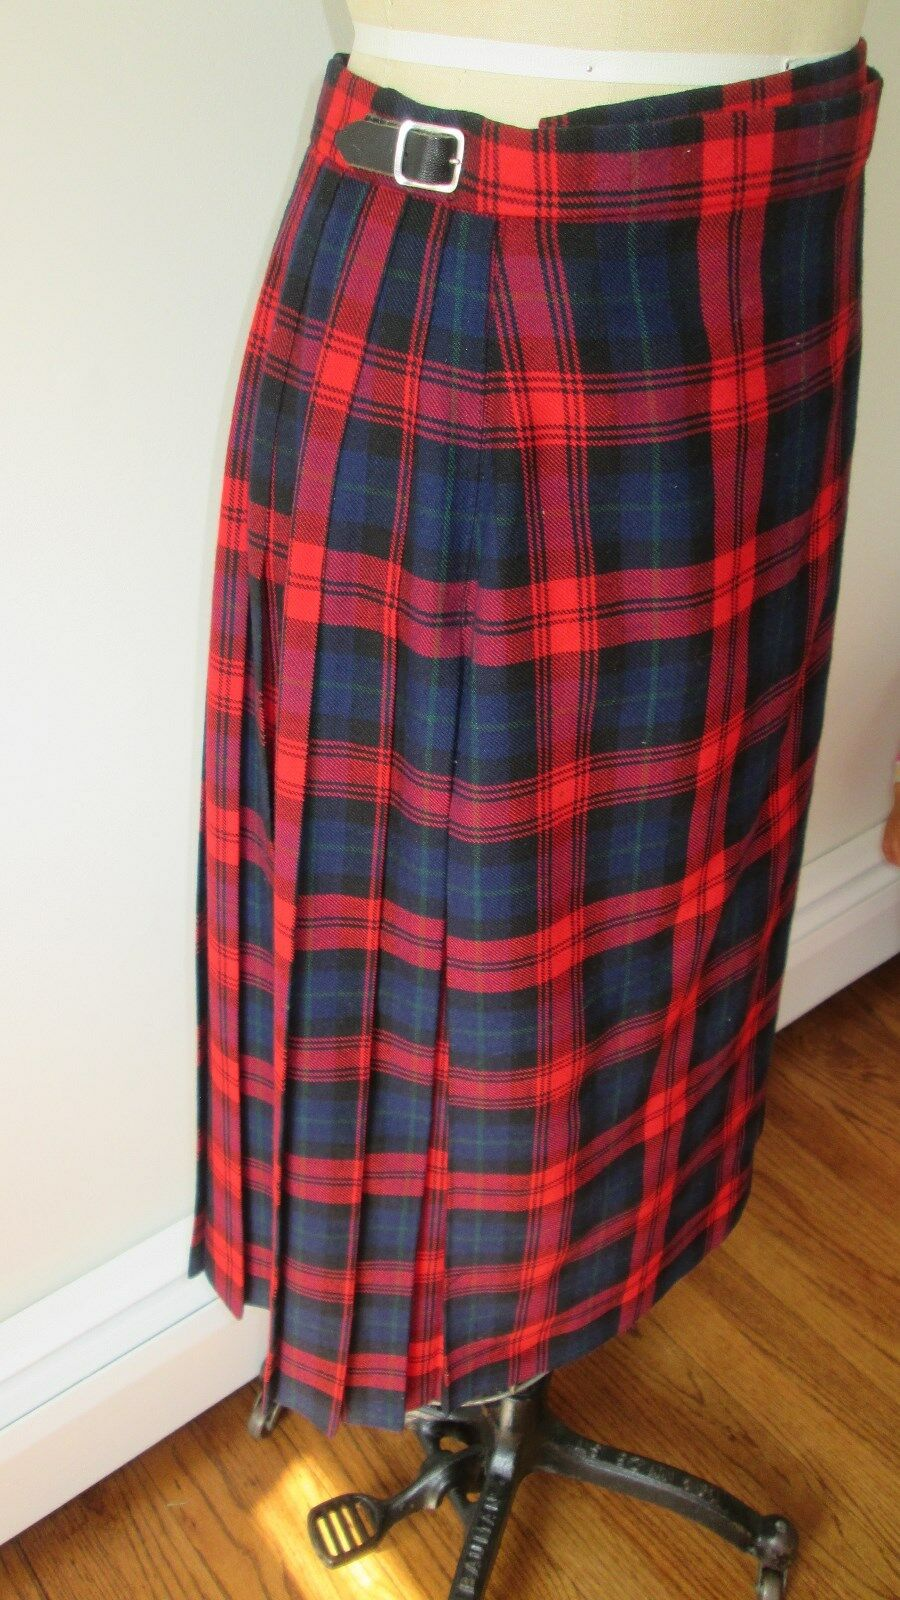 Vintage Brook Bredhers Plaid Wool kilt Size 10 (UK)